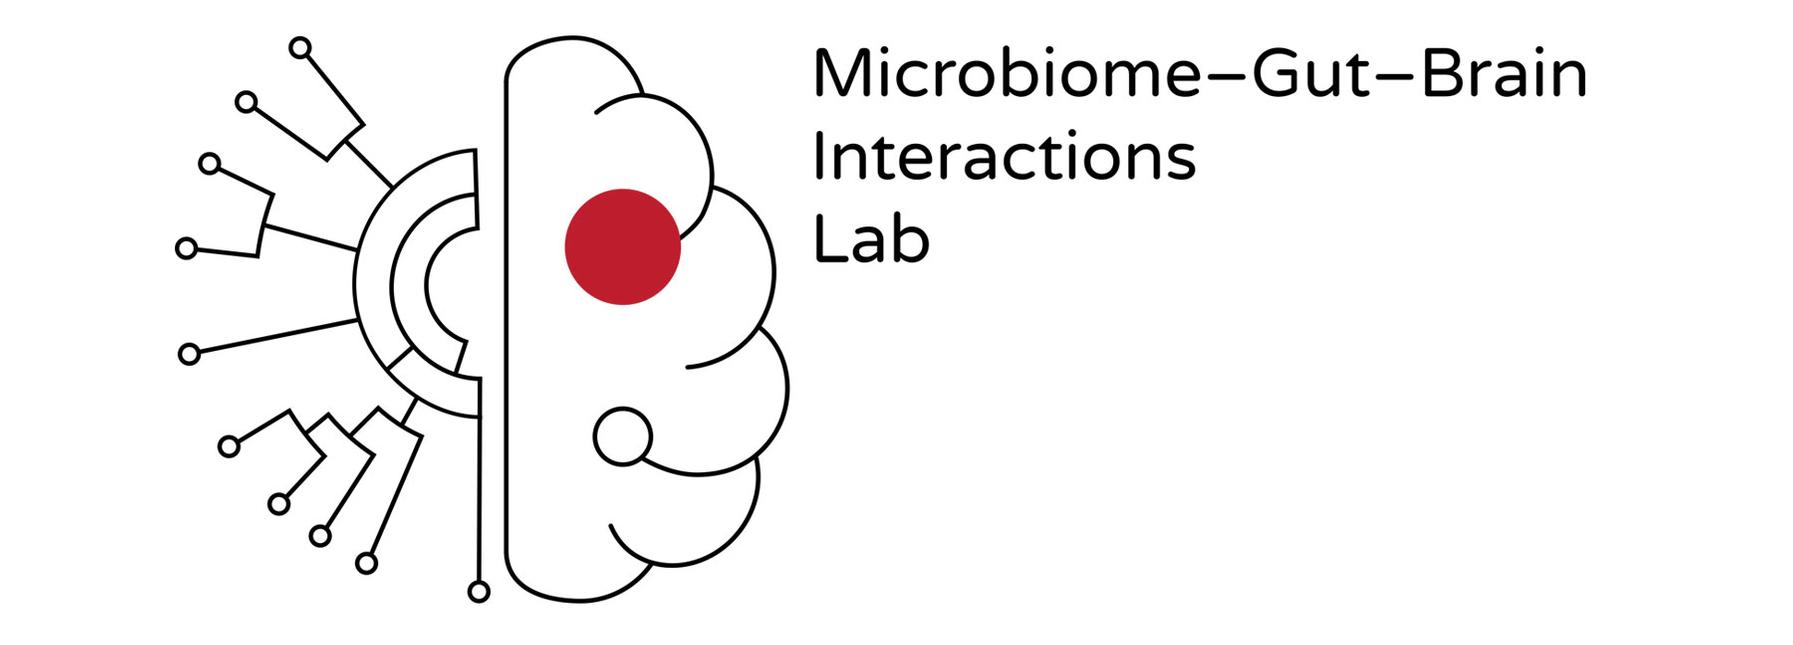 Microbiome-Gut-Brain-Interactions-Lab